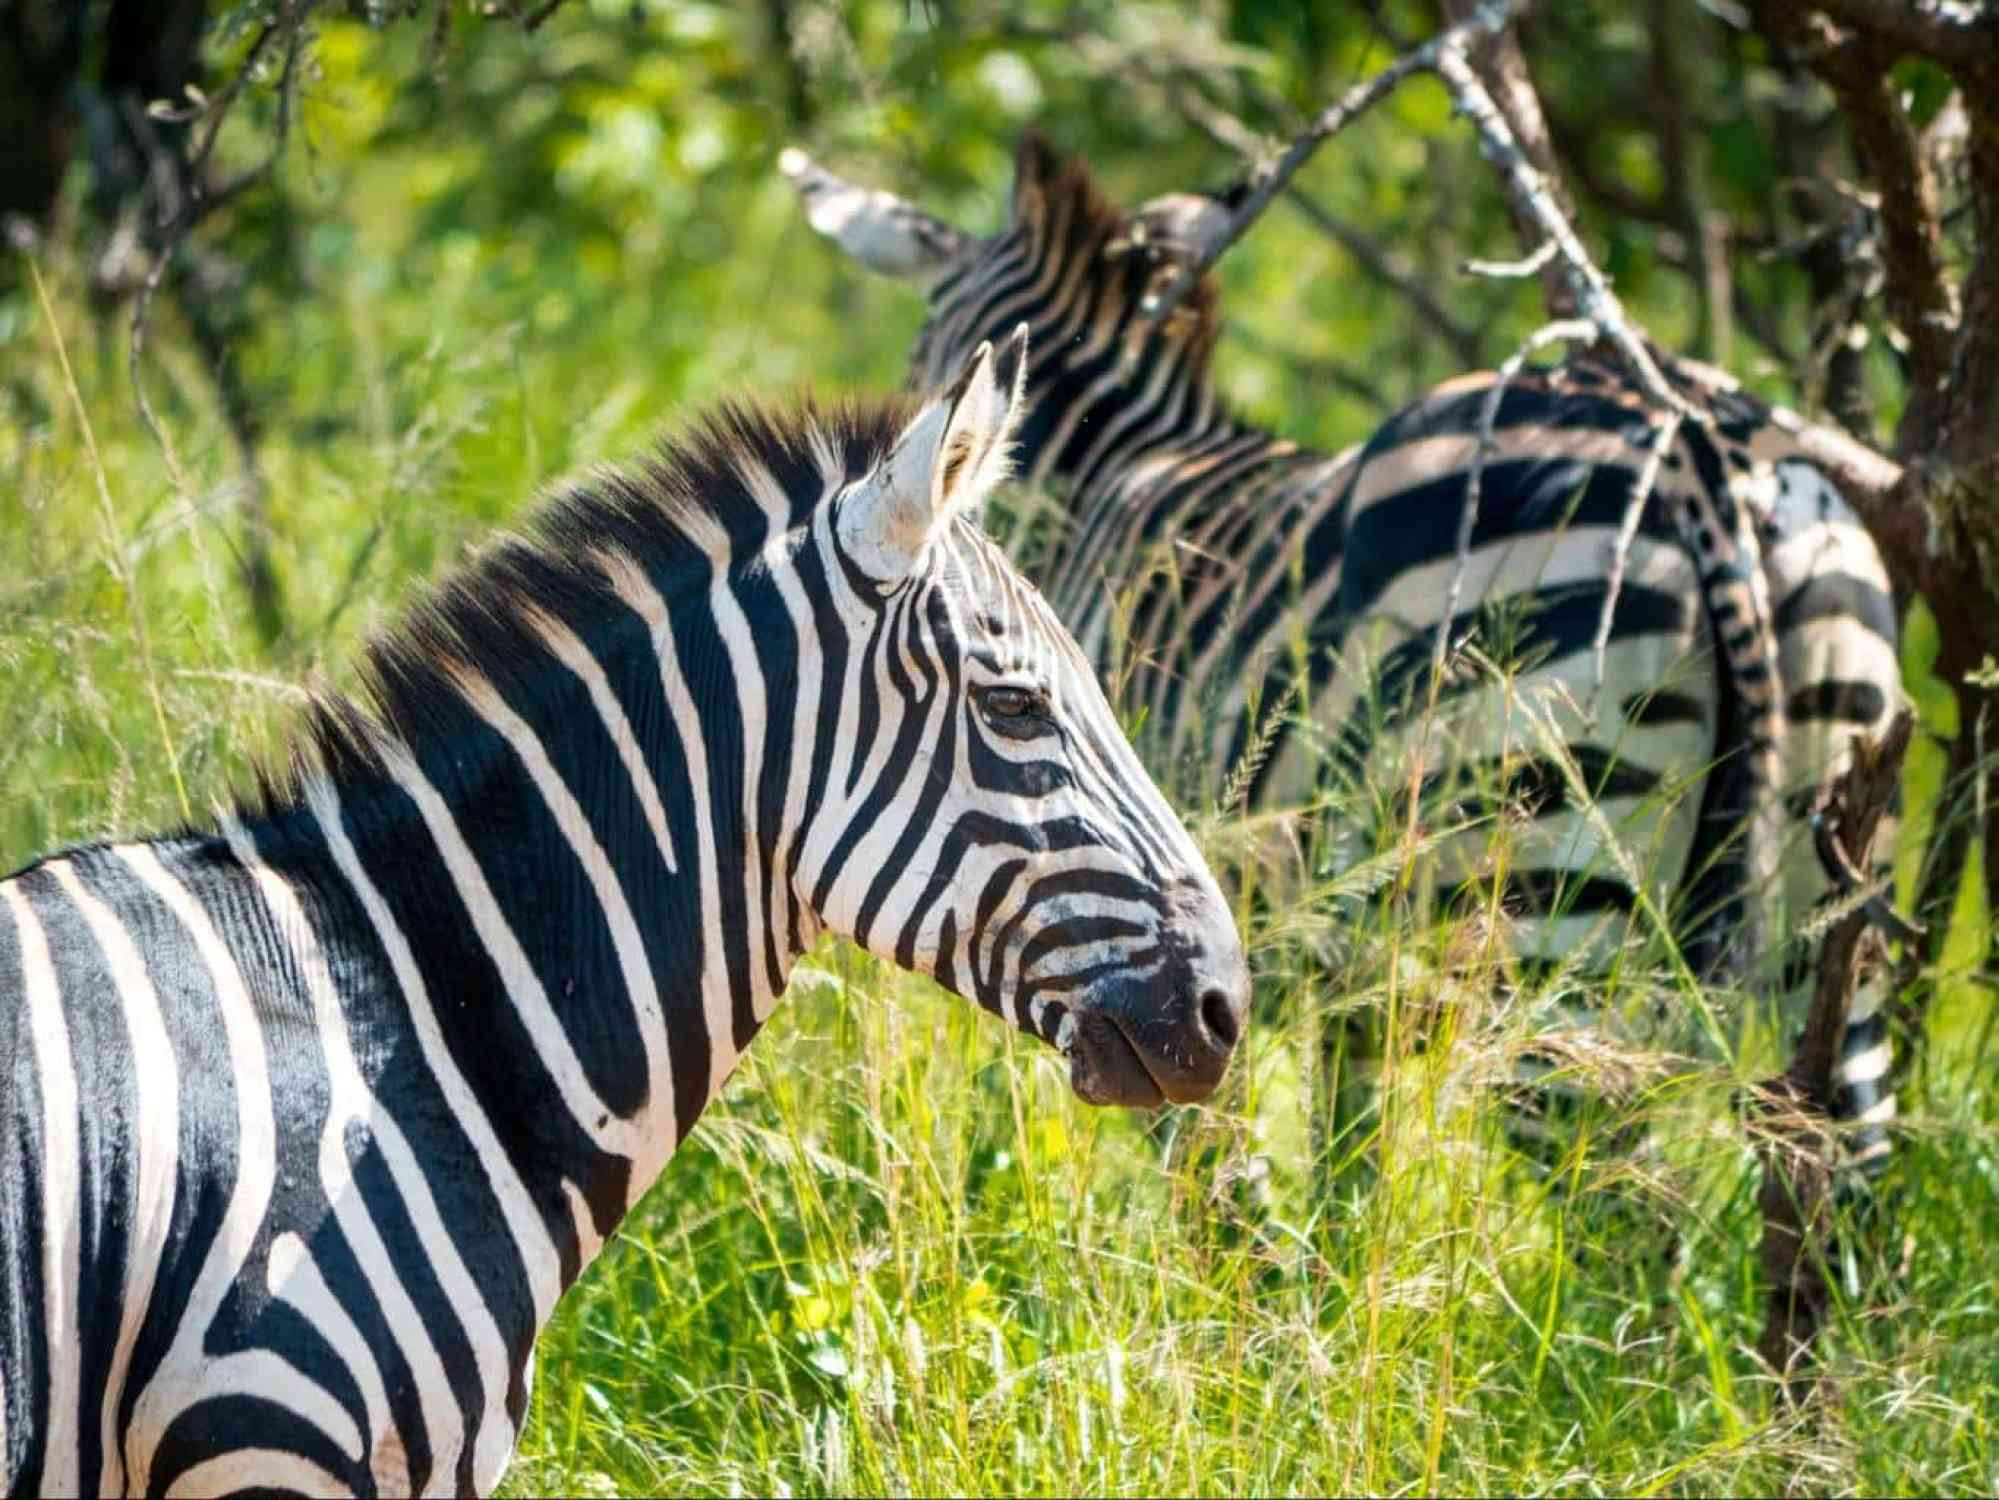 The zebras in Akagera National Park